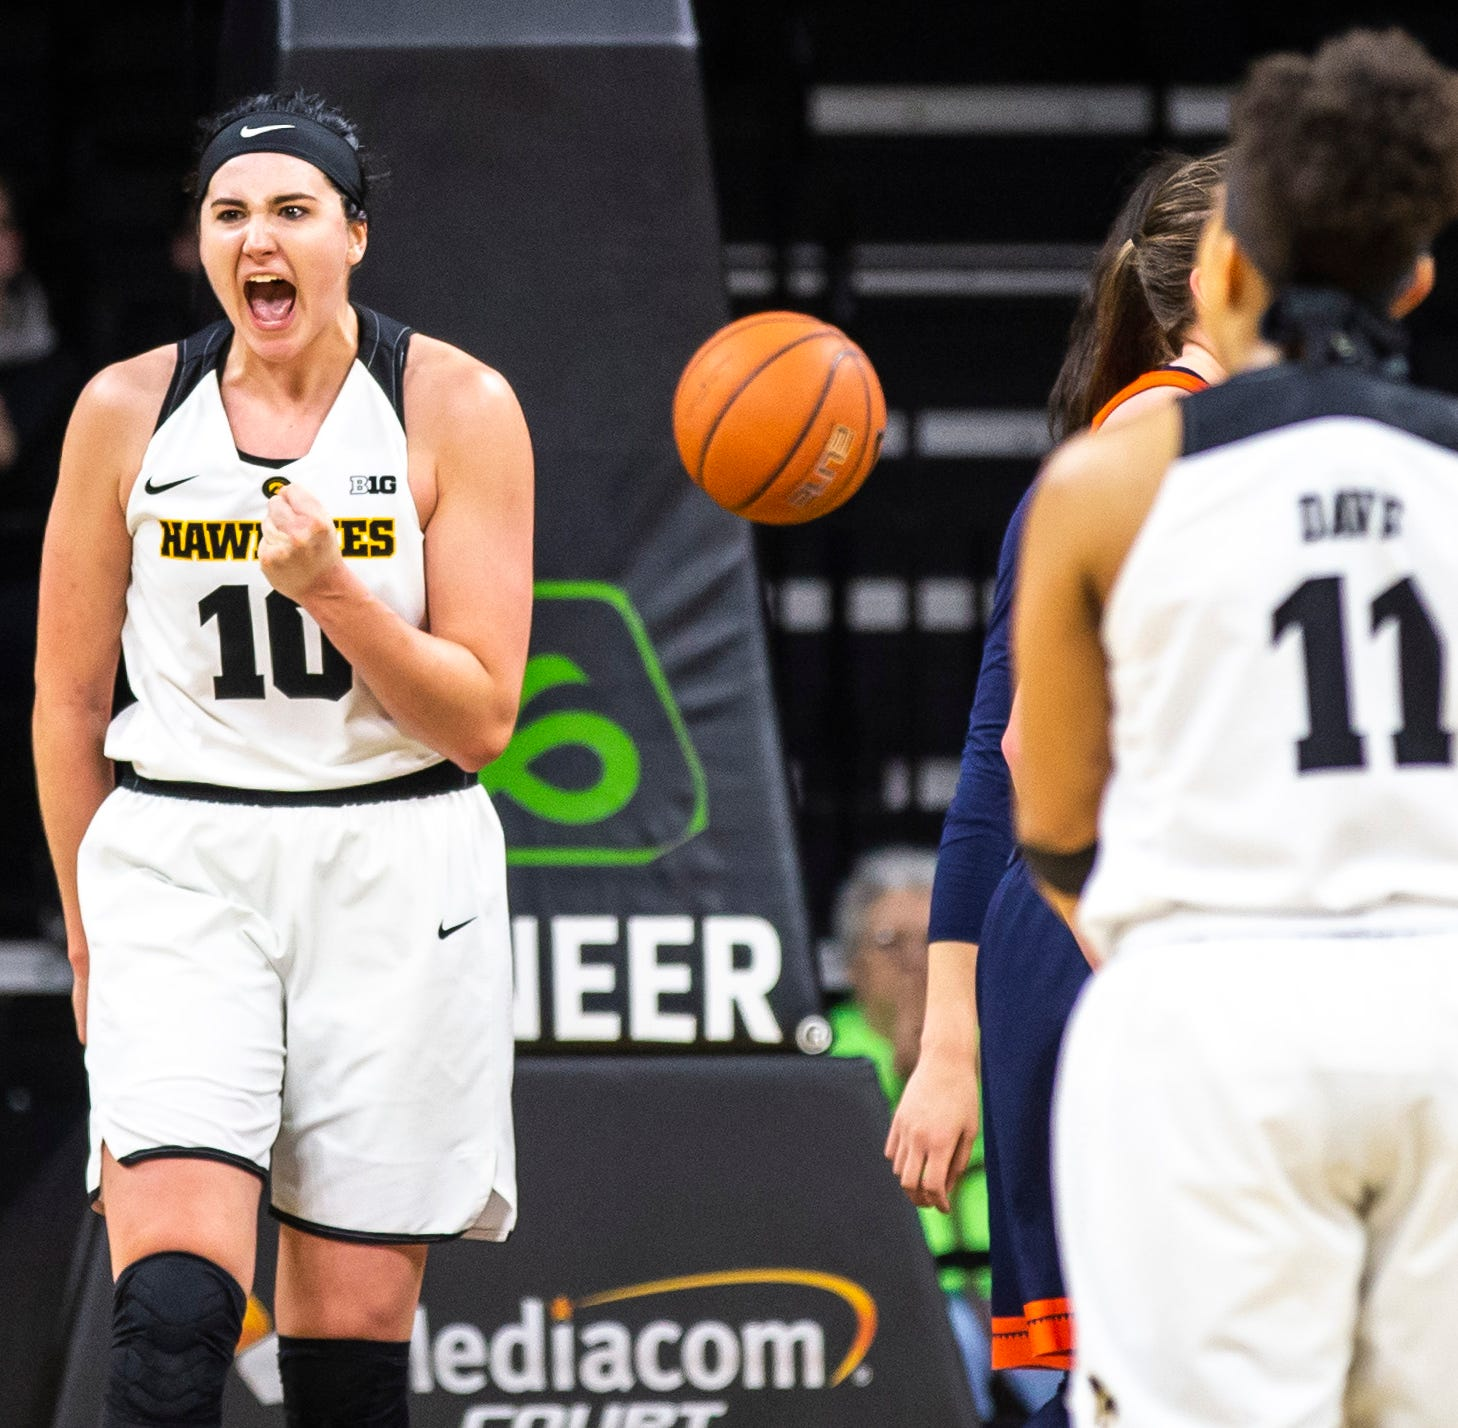 Iowa women's basketball: No. 13 Hawkeyes cruise by Illinois; Maryland showdown up next